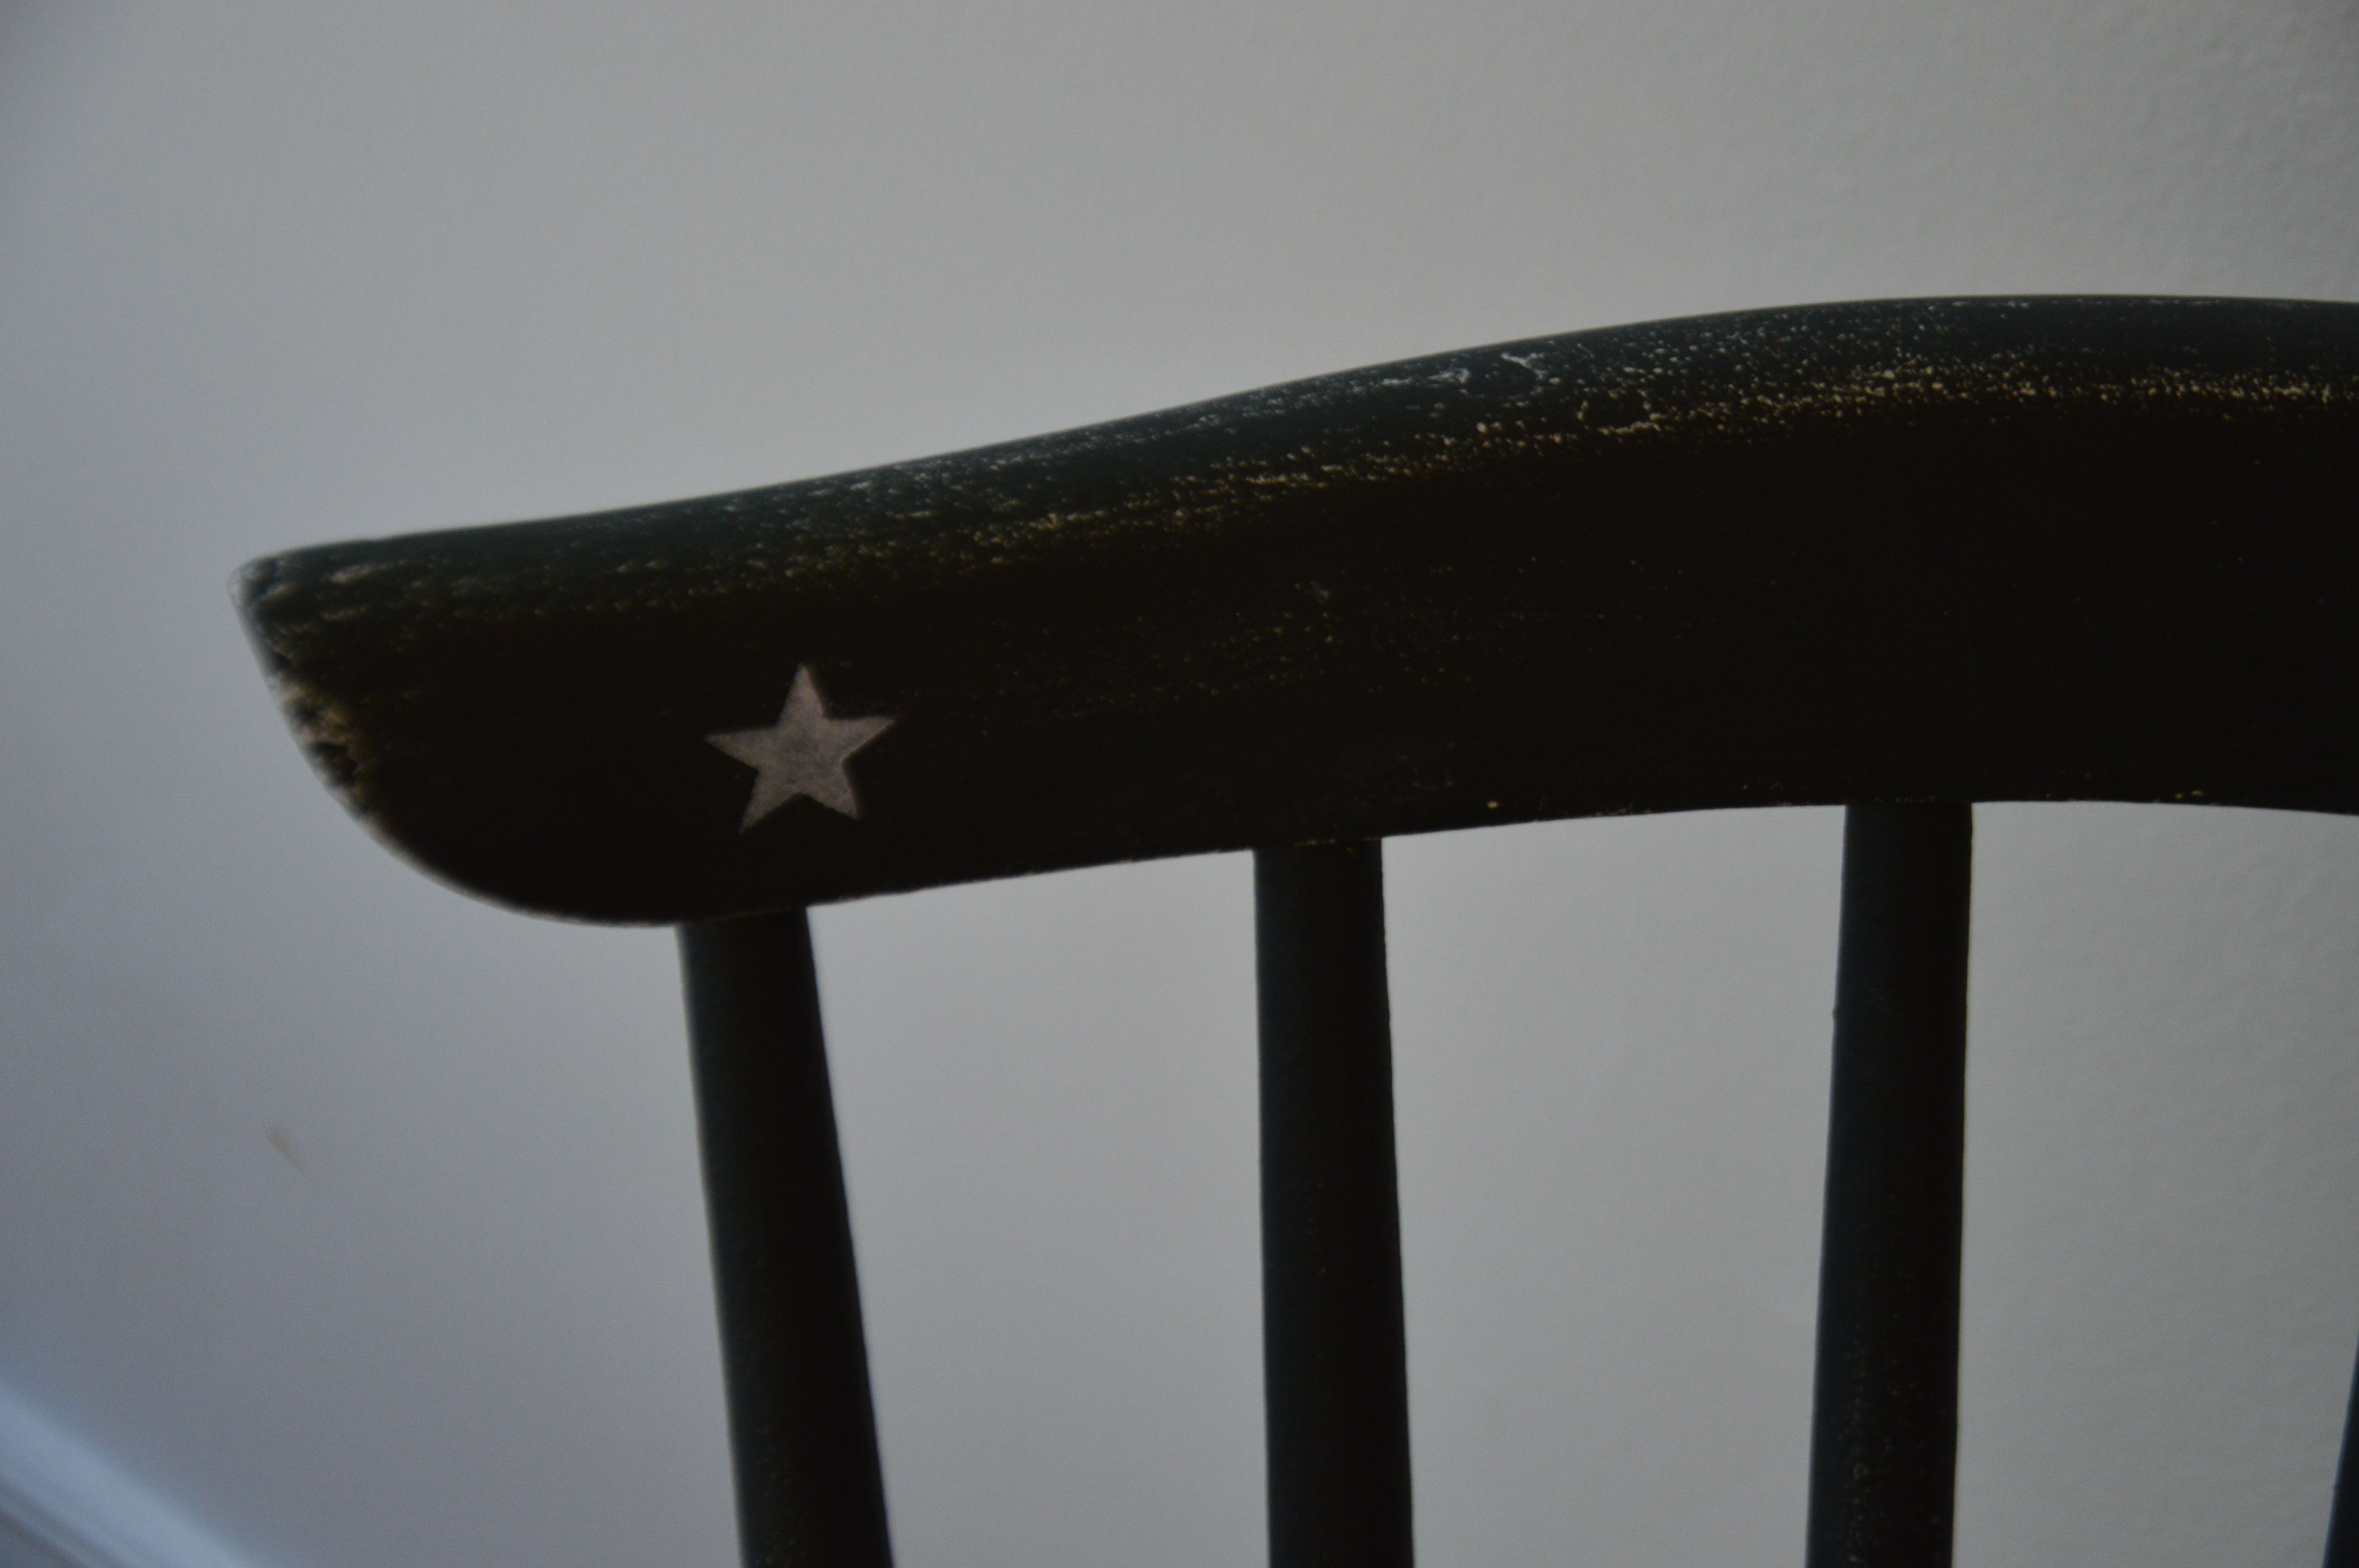 Aged chair from with a stenciled star http://grisfonce.canalblog.com/